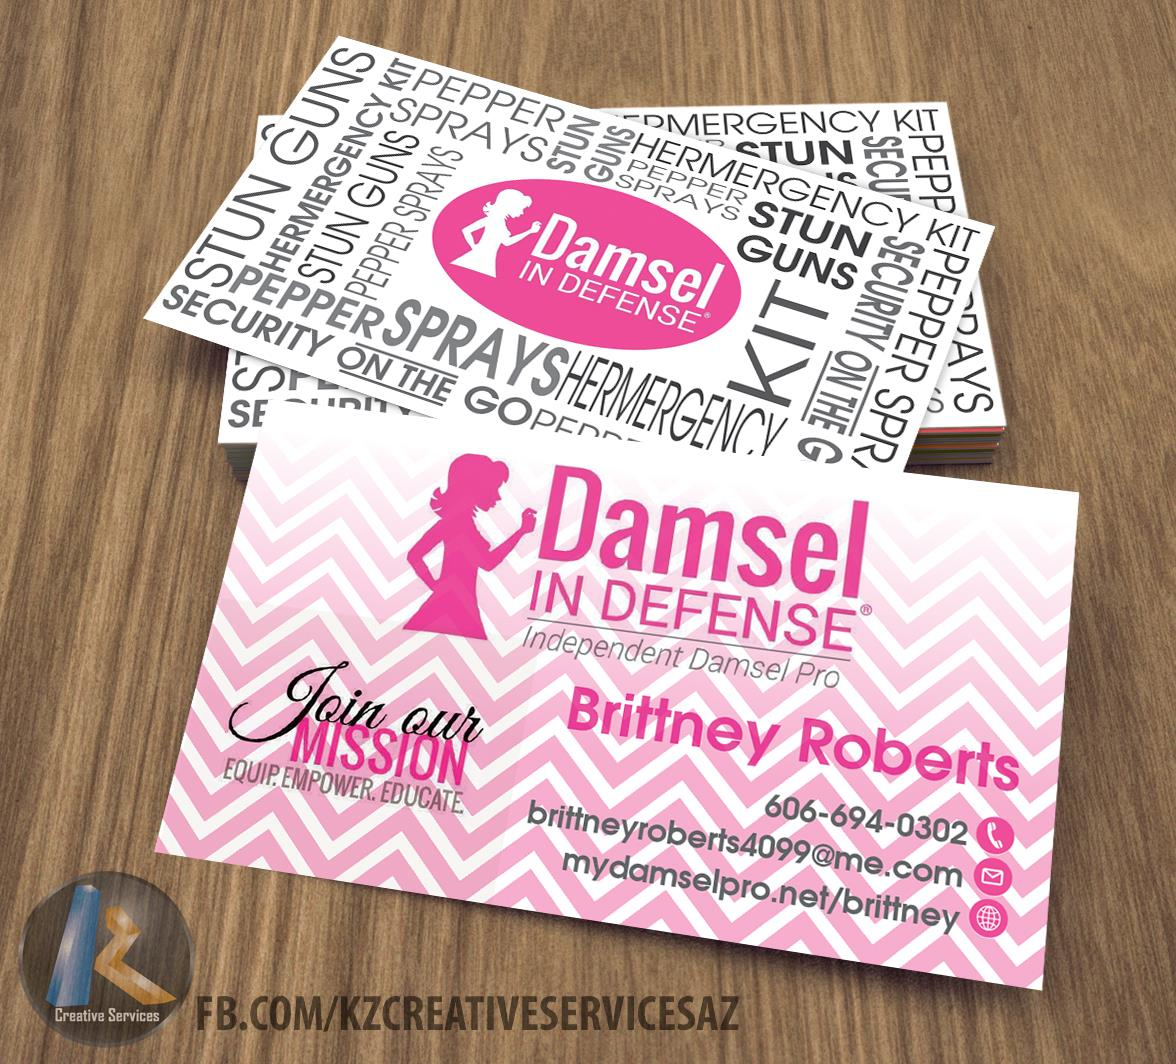 Damsel in defense business cards style 2 kz creative for Damsel in defense business cards